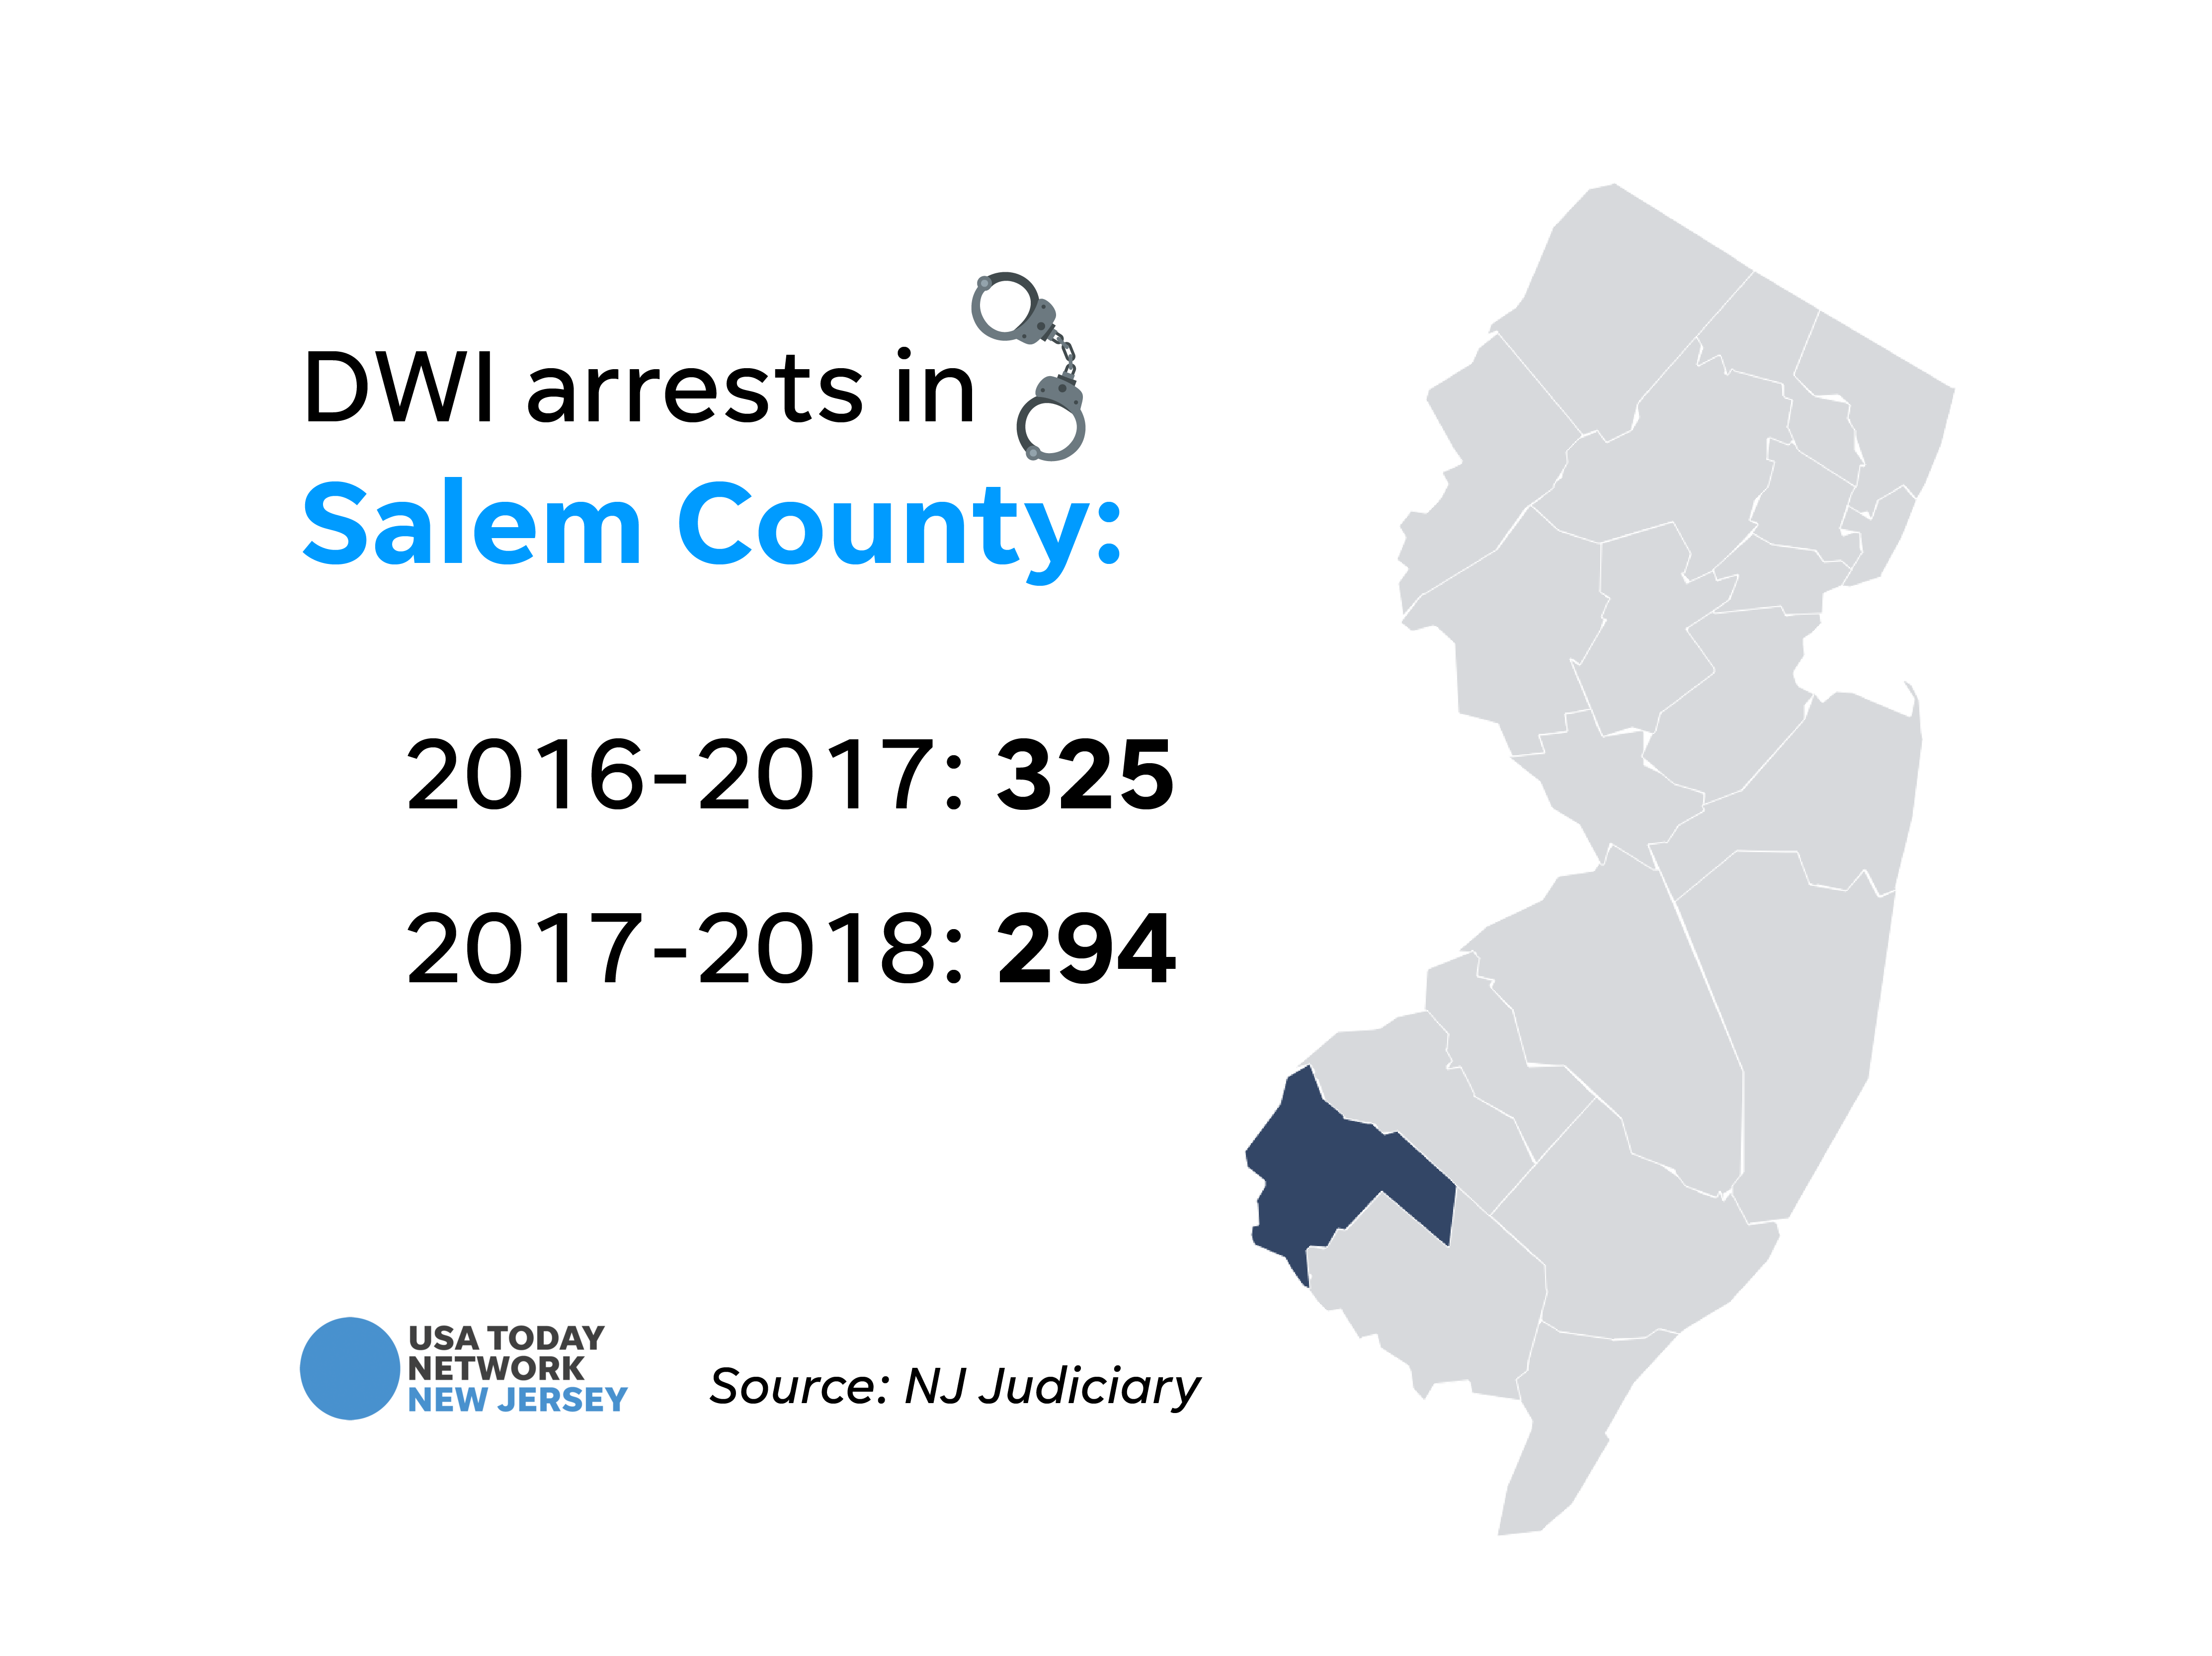 DWI arrests in Salem County.